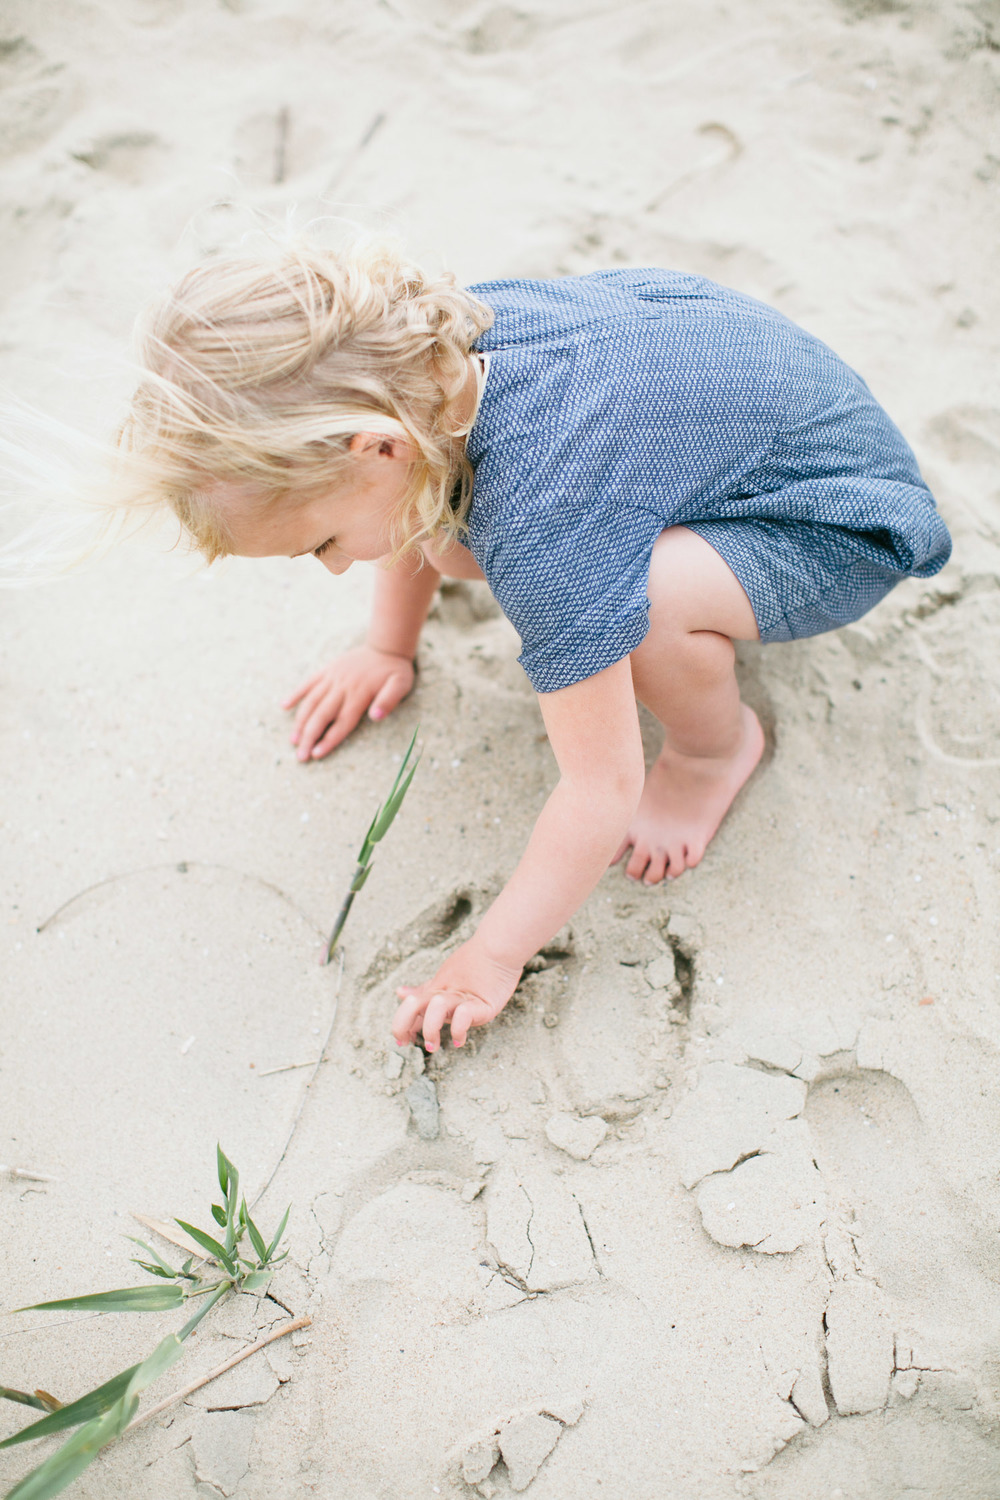 Kids photography by Carina Kaba